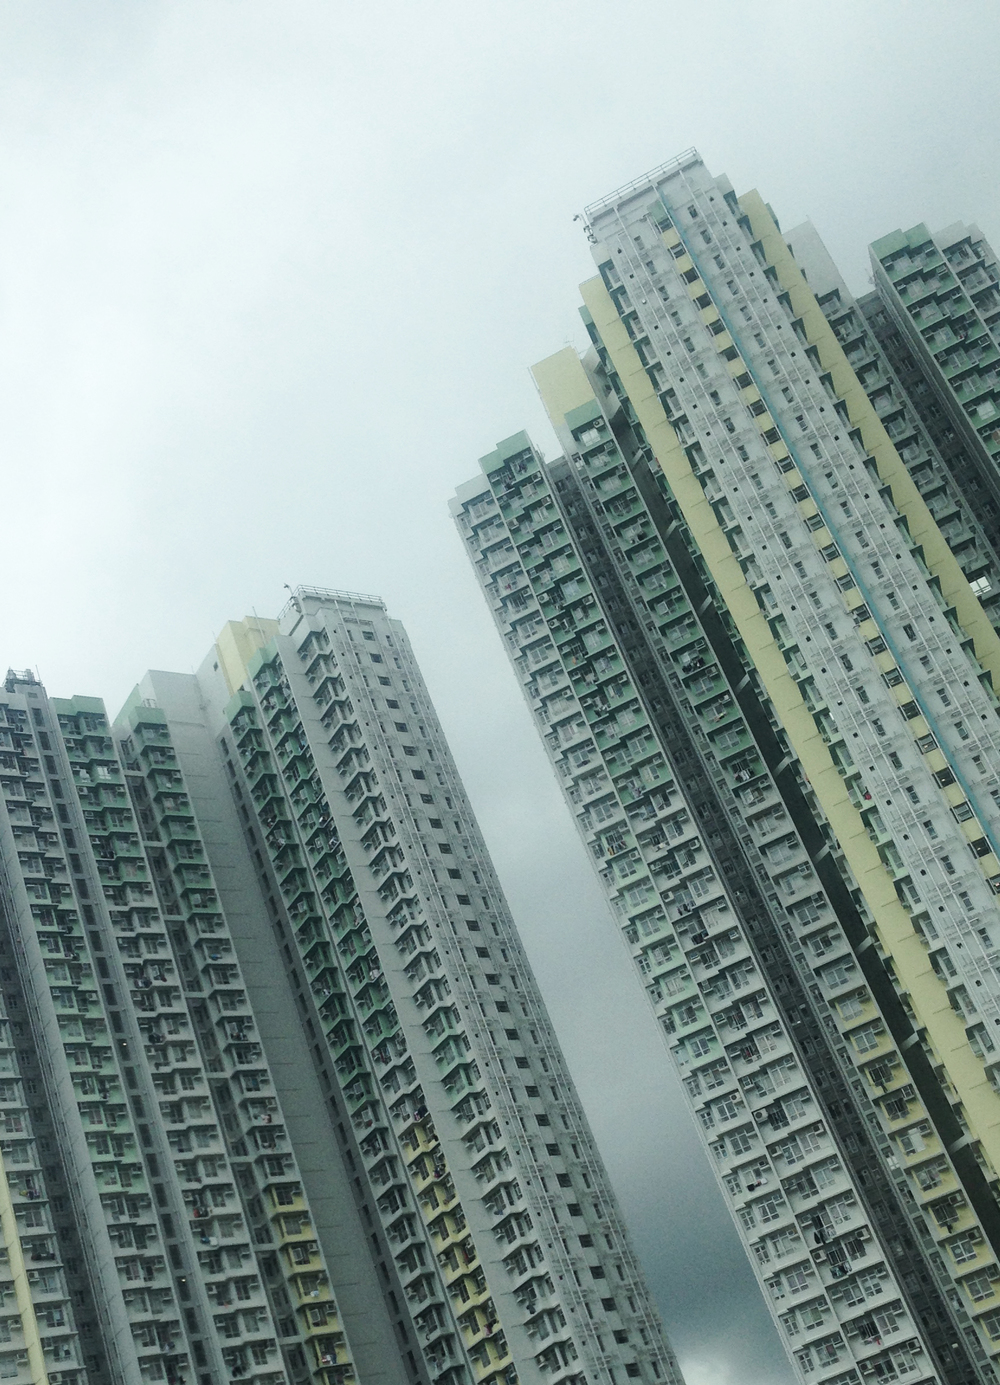 Hong Kong also goes by the name The Concrete Jungle